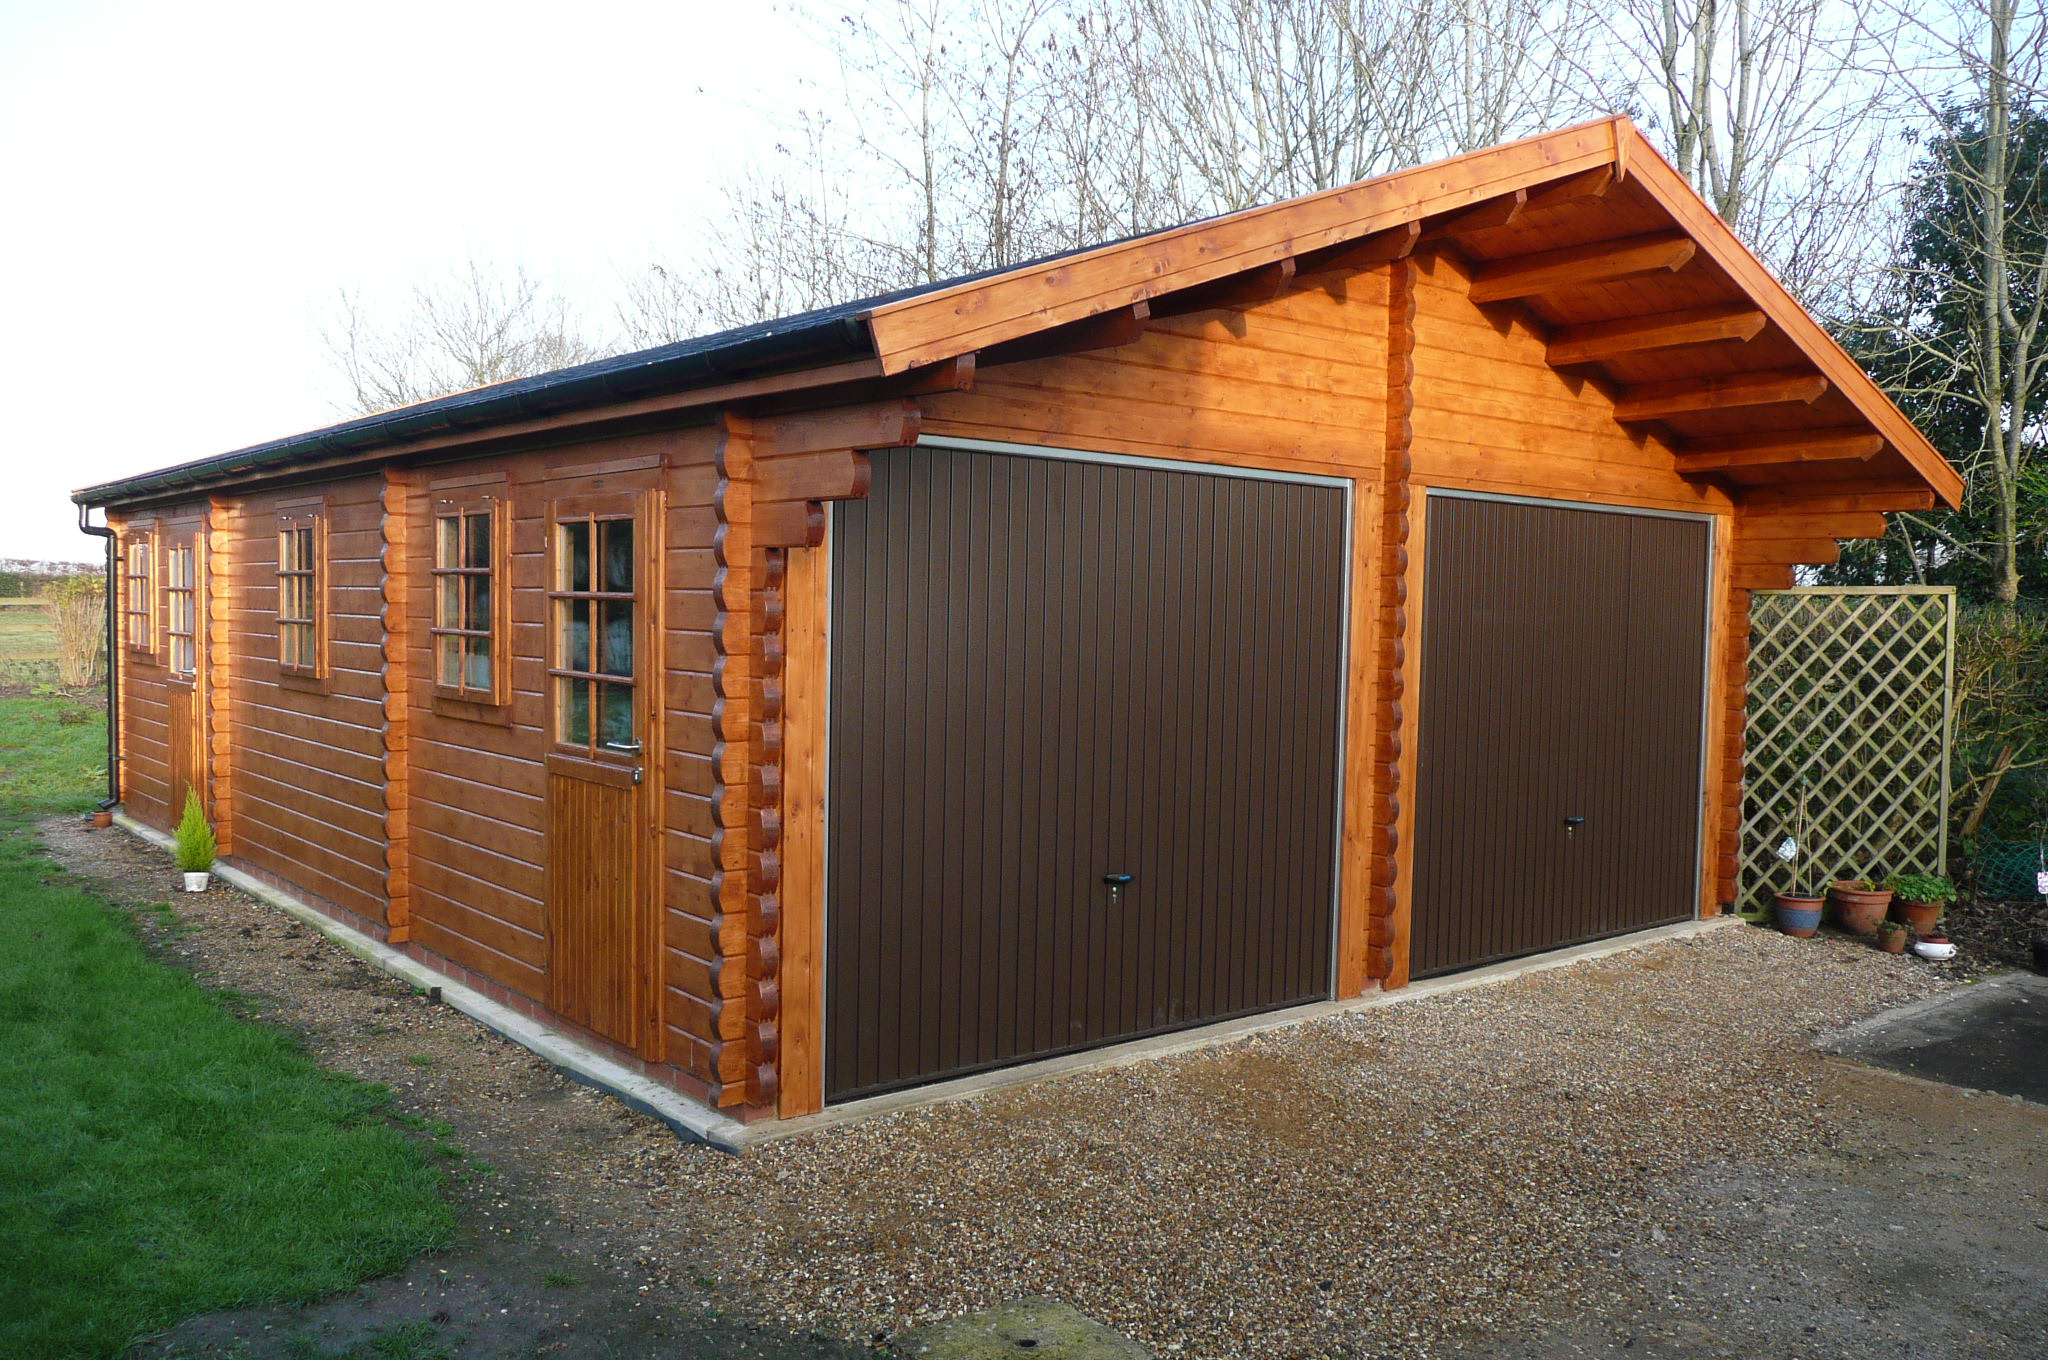 Mr c 39 s classic garage 6m x 9m keops interlock log cabins for Garage cabins